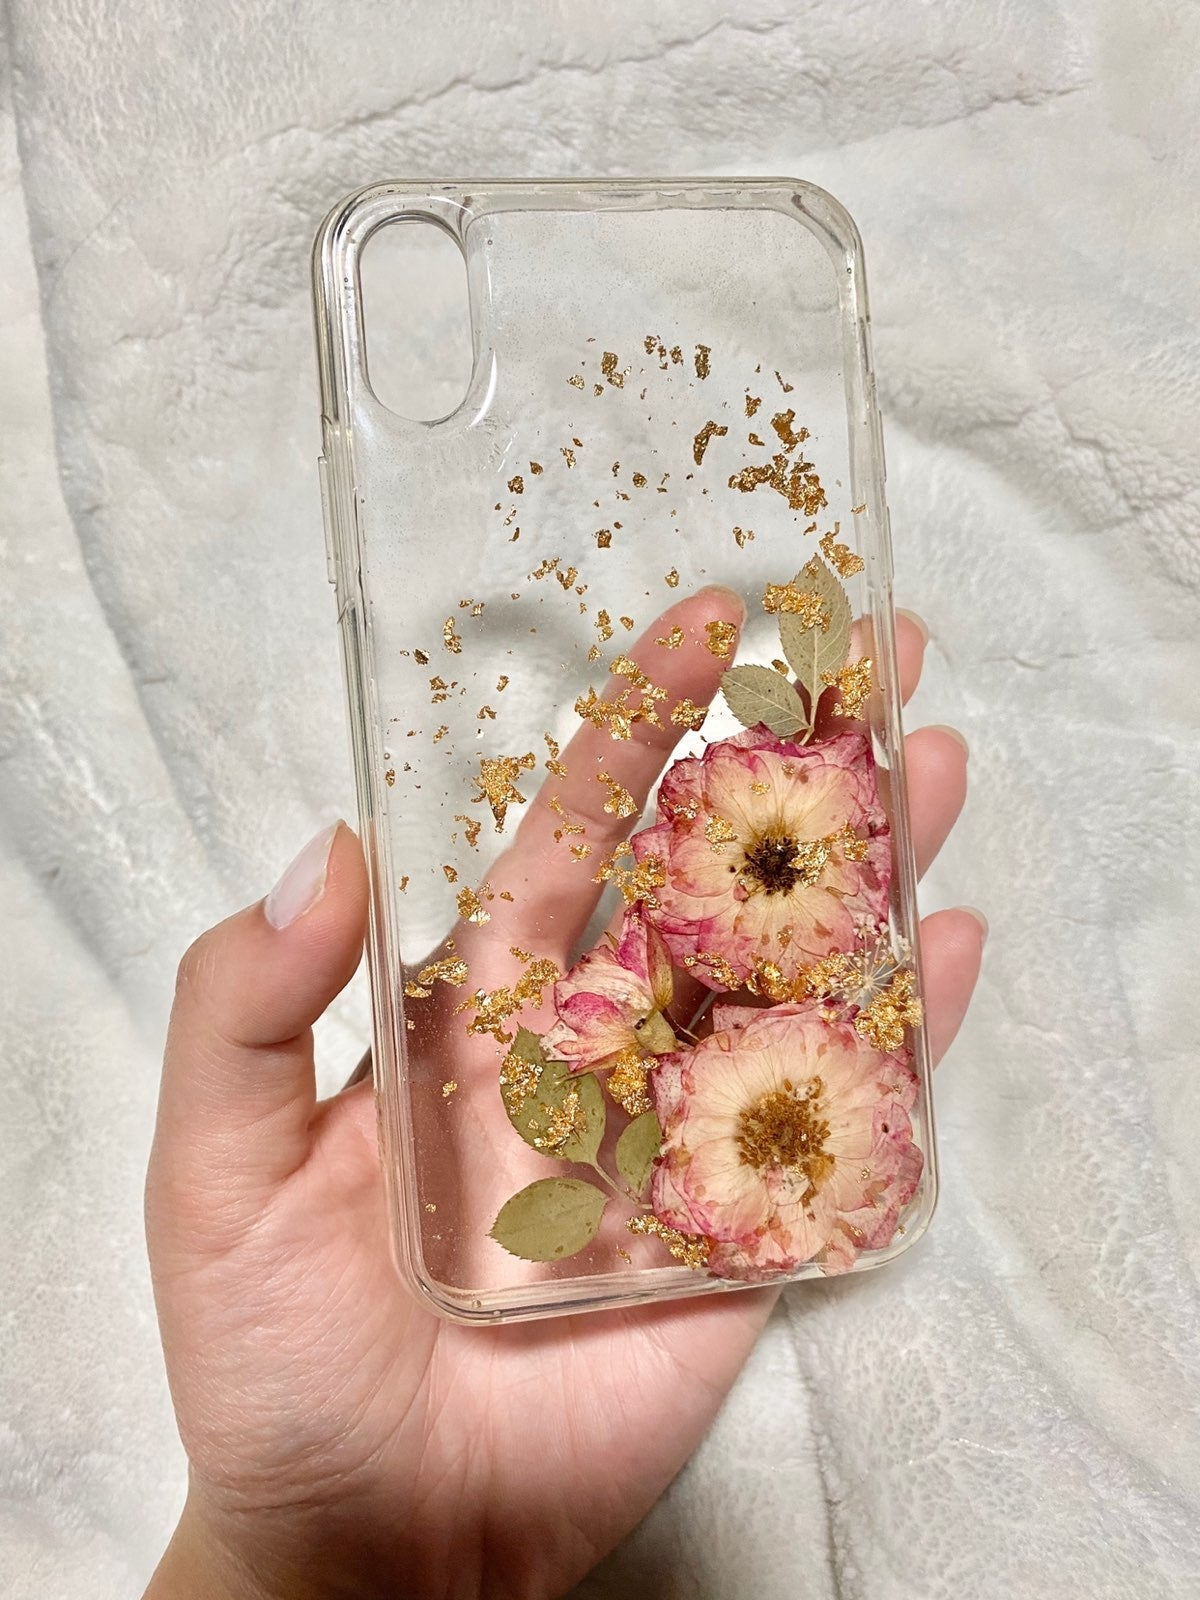 iPhone XS case with gold flake and press